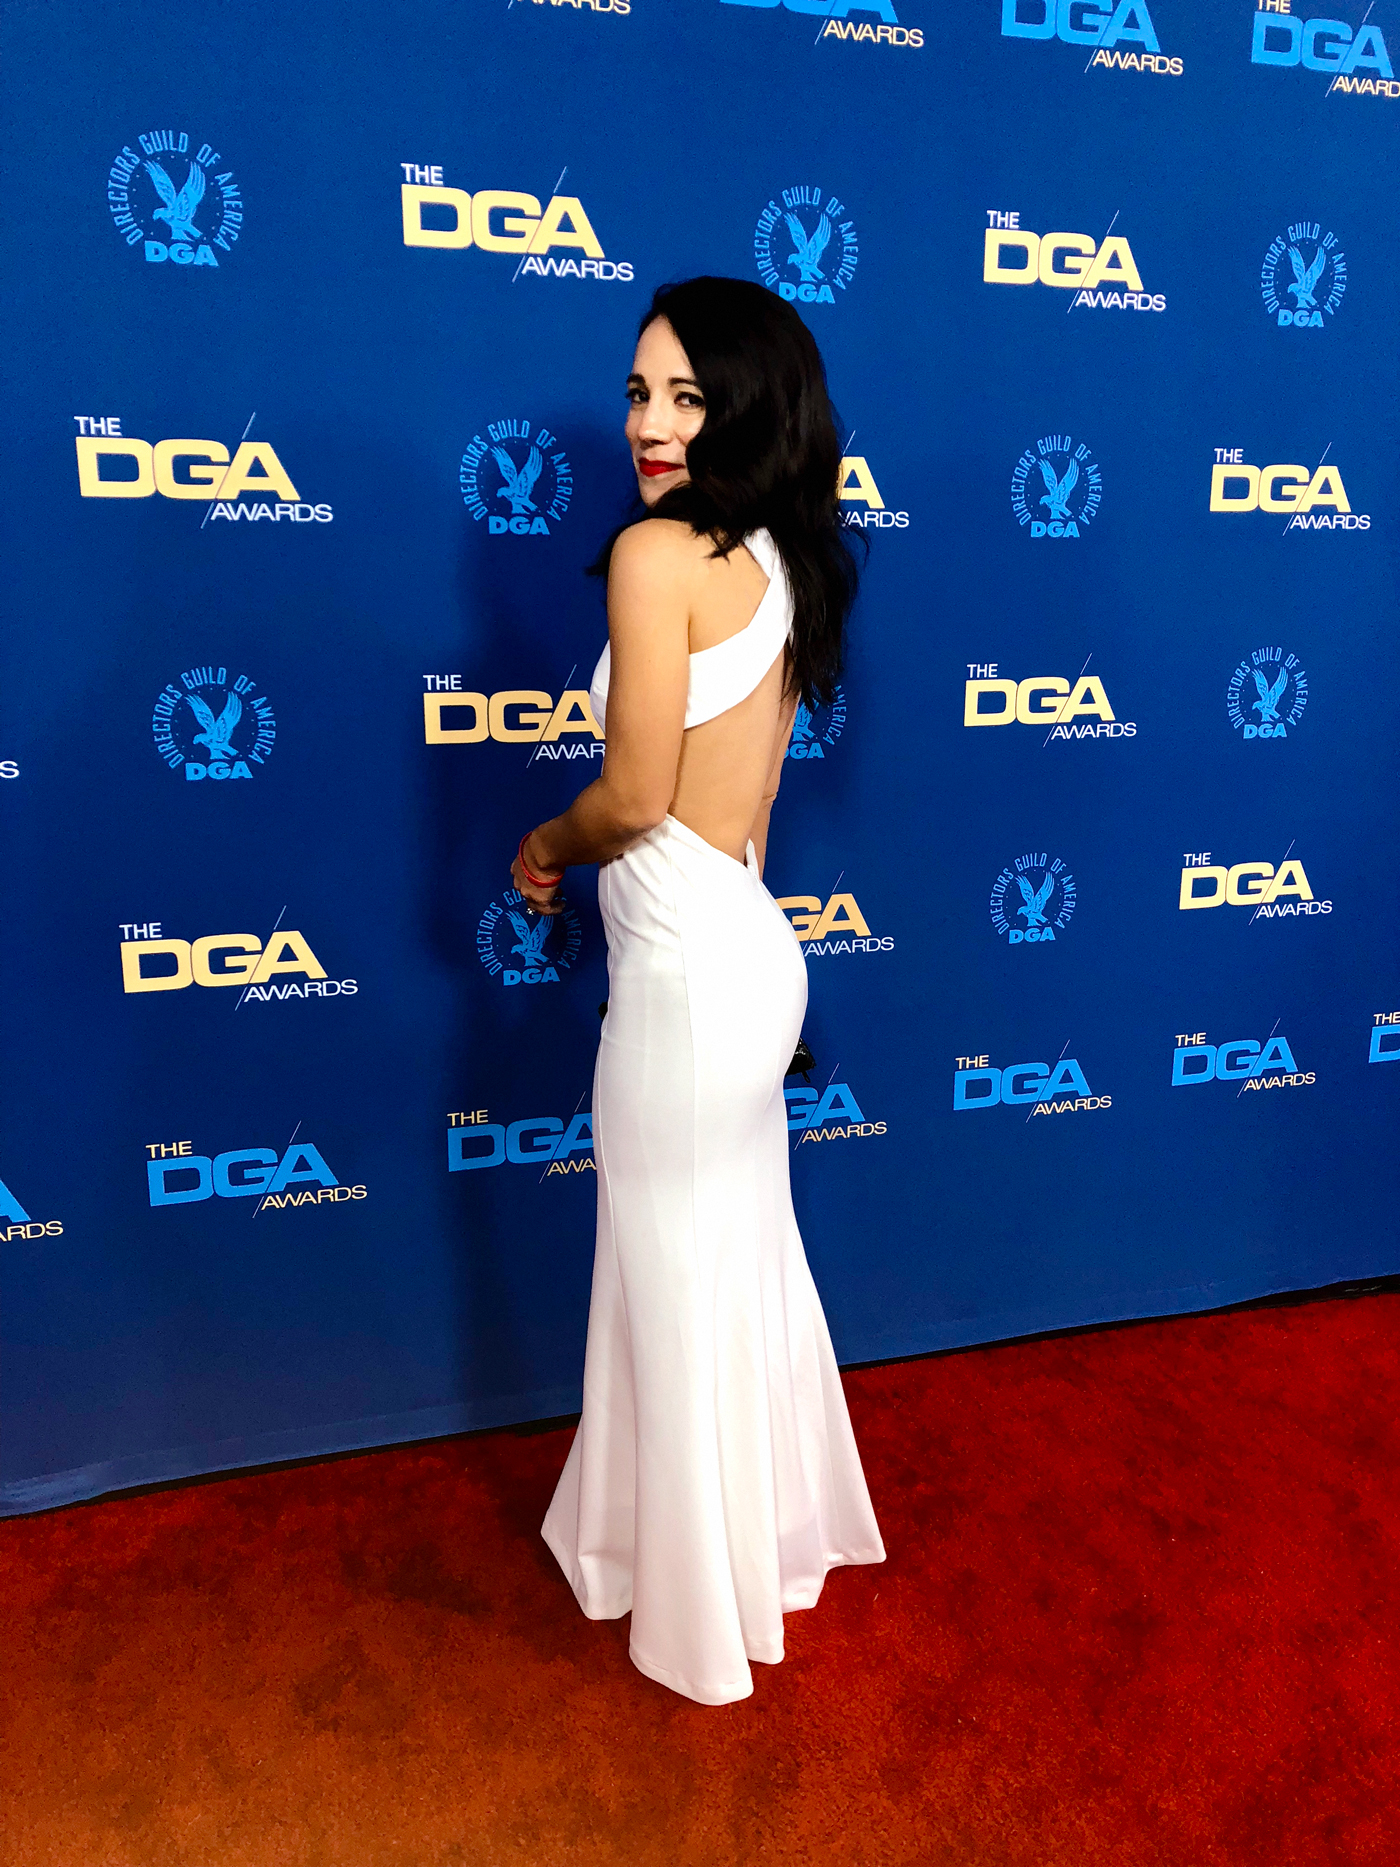 Lauren Indovina at the 71st Annual DGA Awards